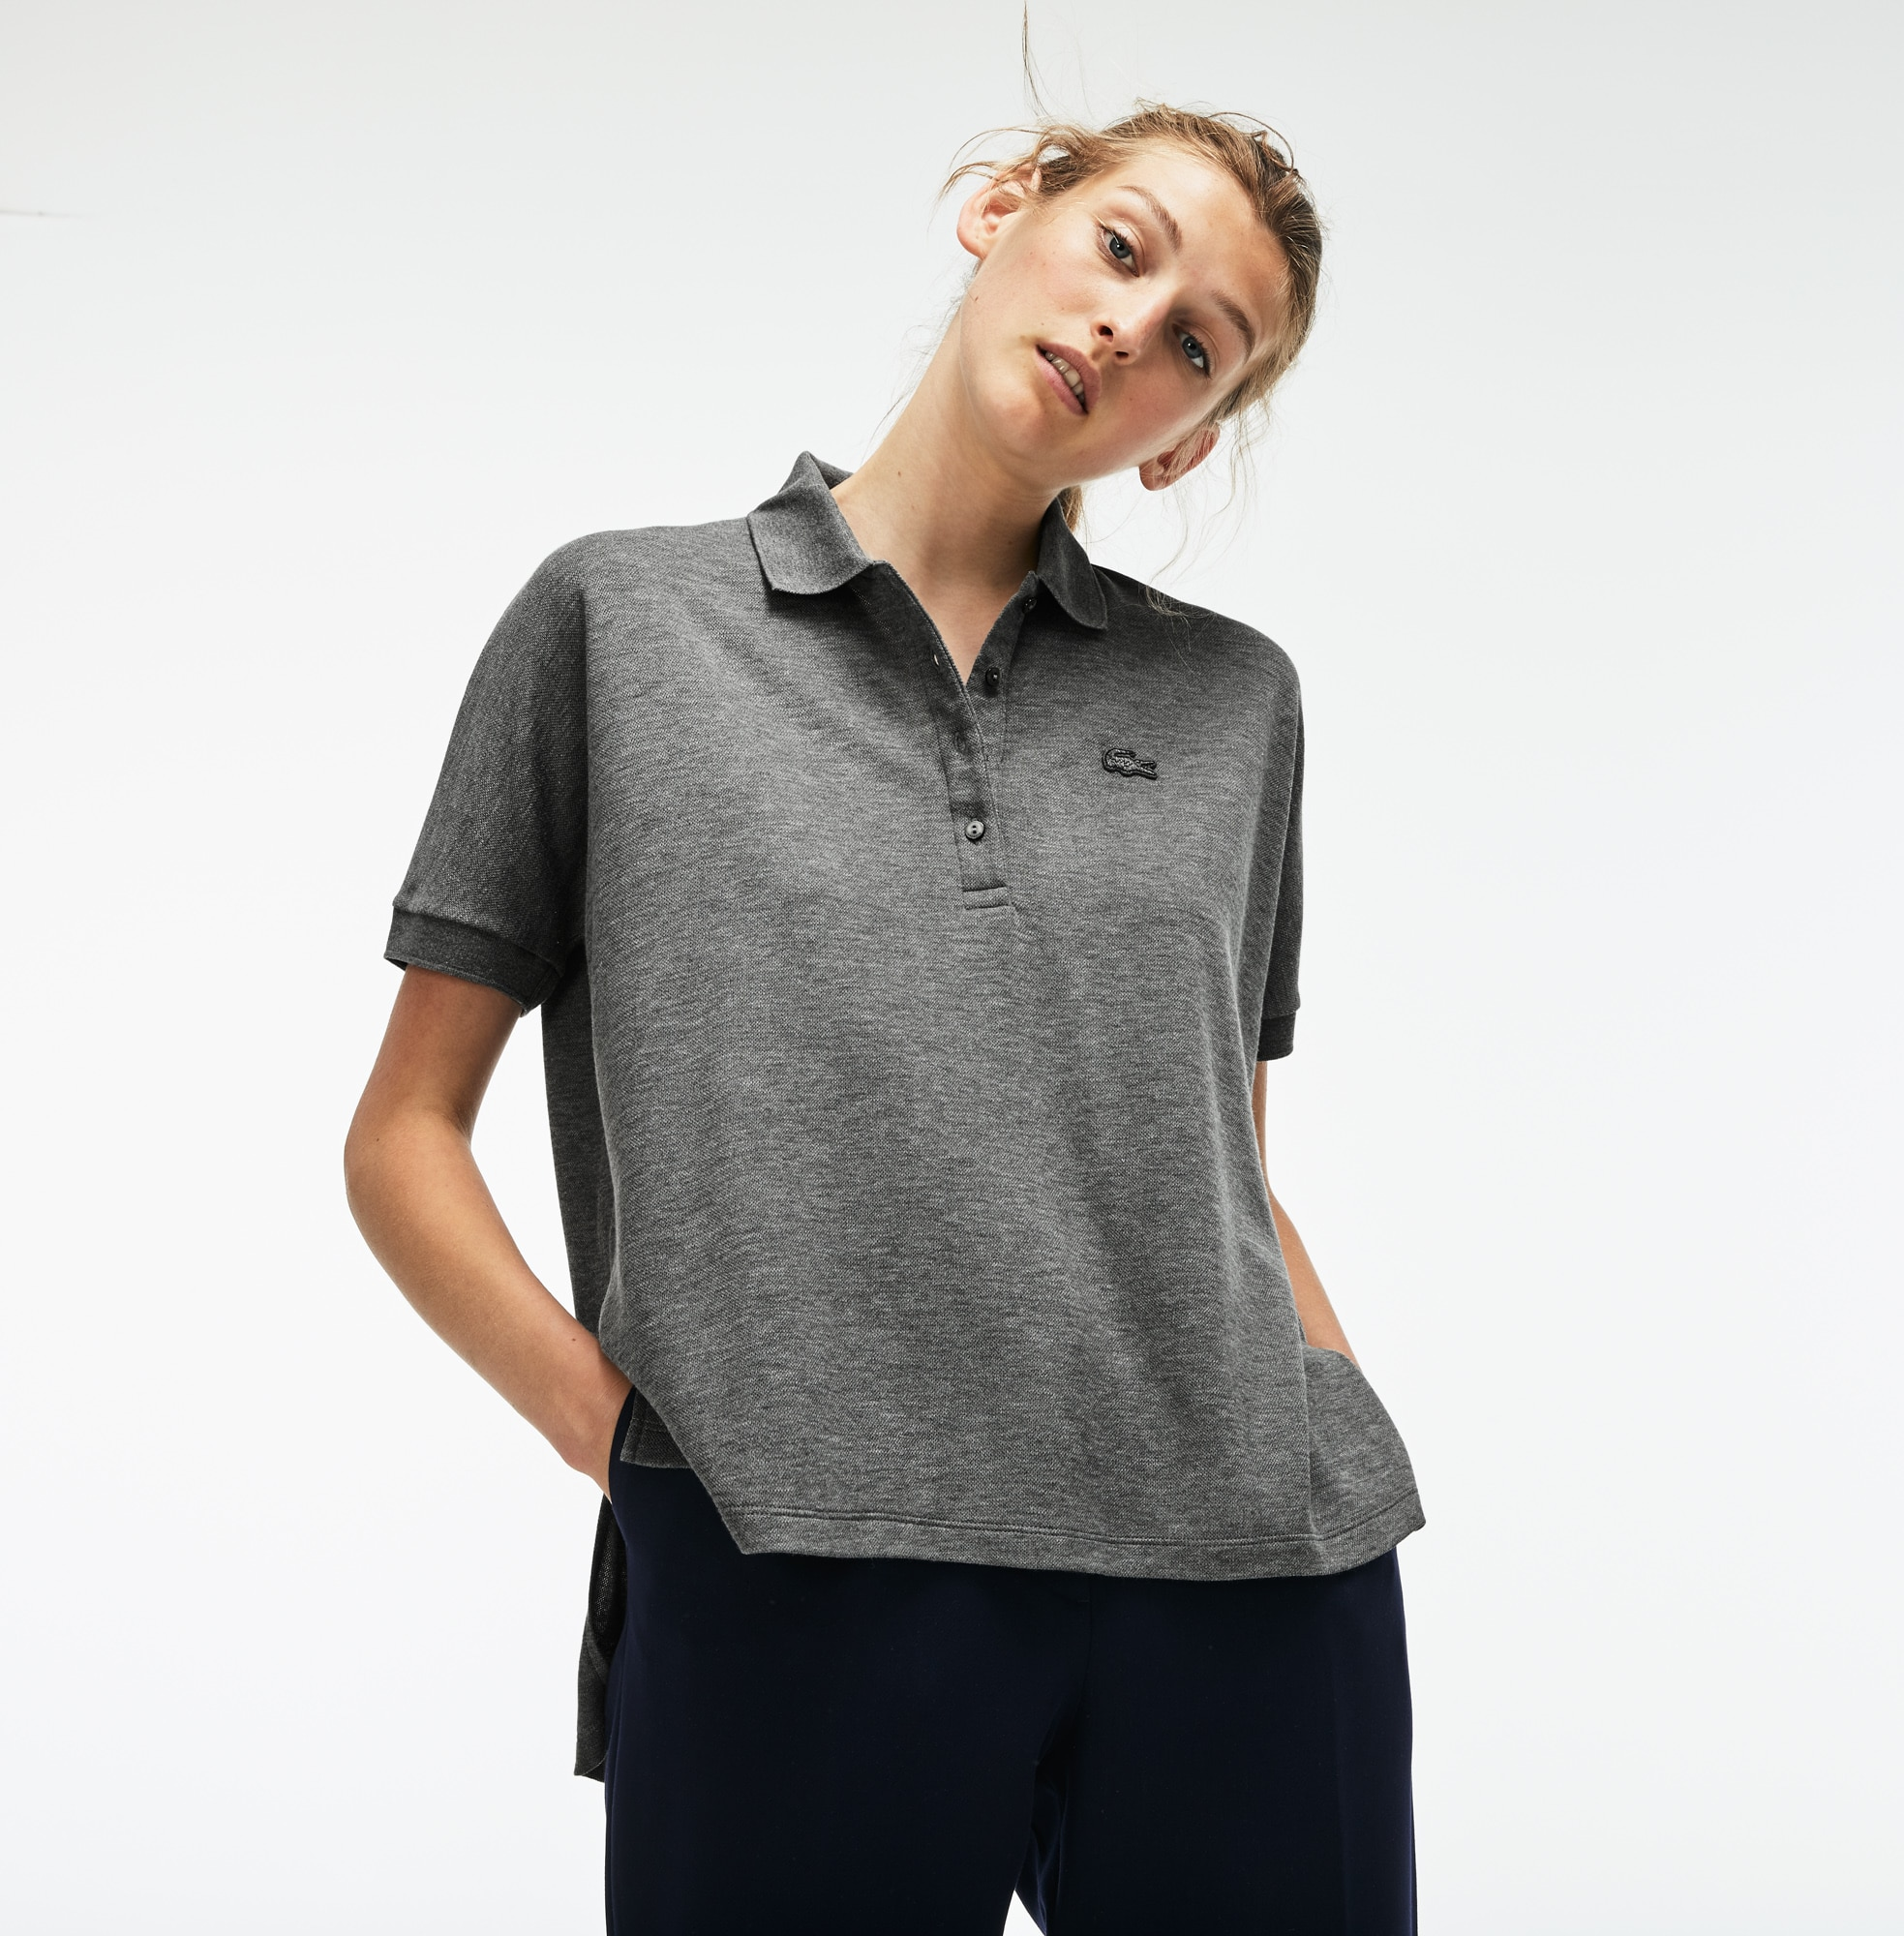 Women's Lacoste Relax Fit Flowing Stretch Cotton Piqué Soft Polo Shirt